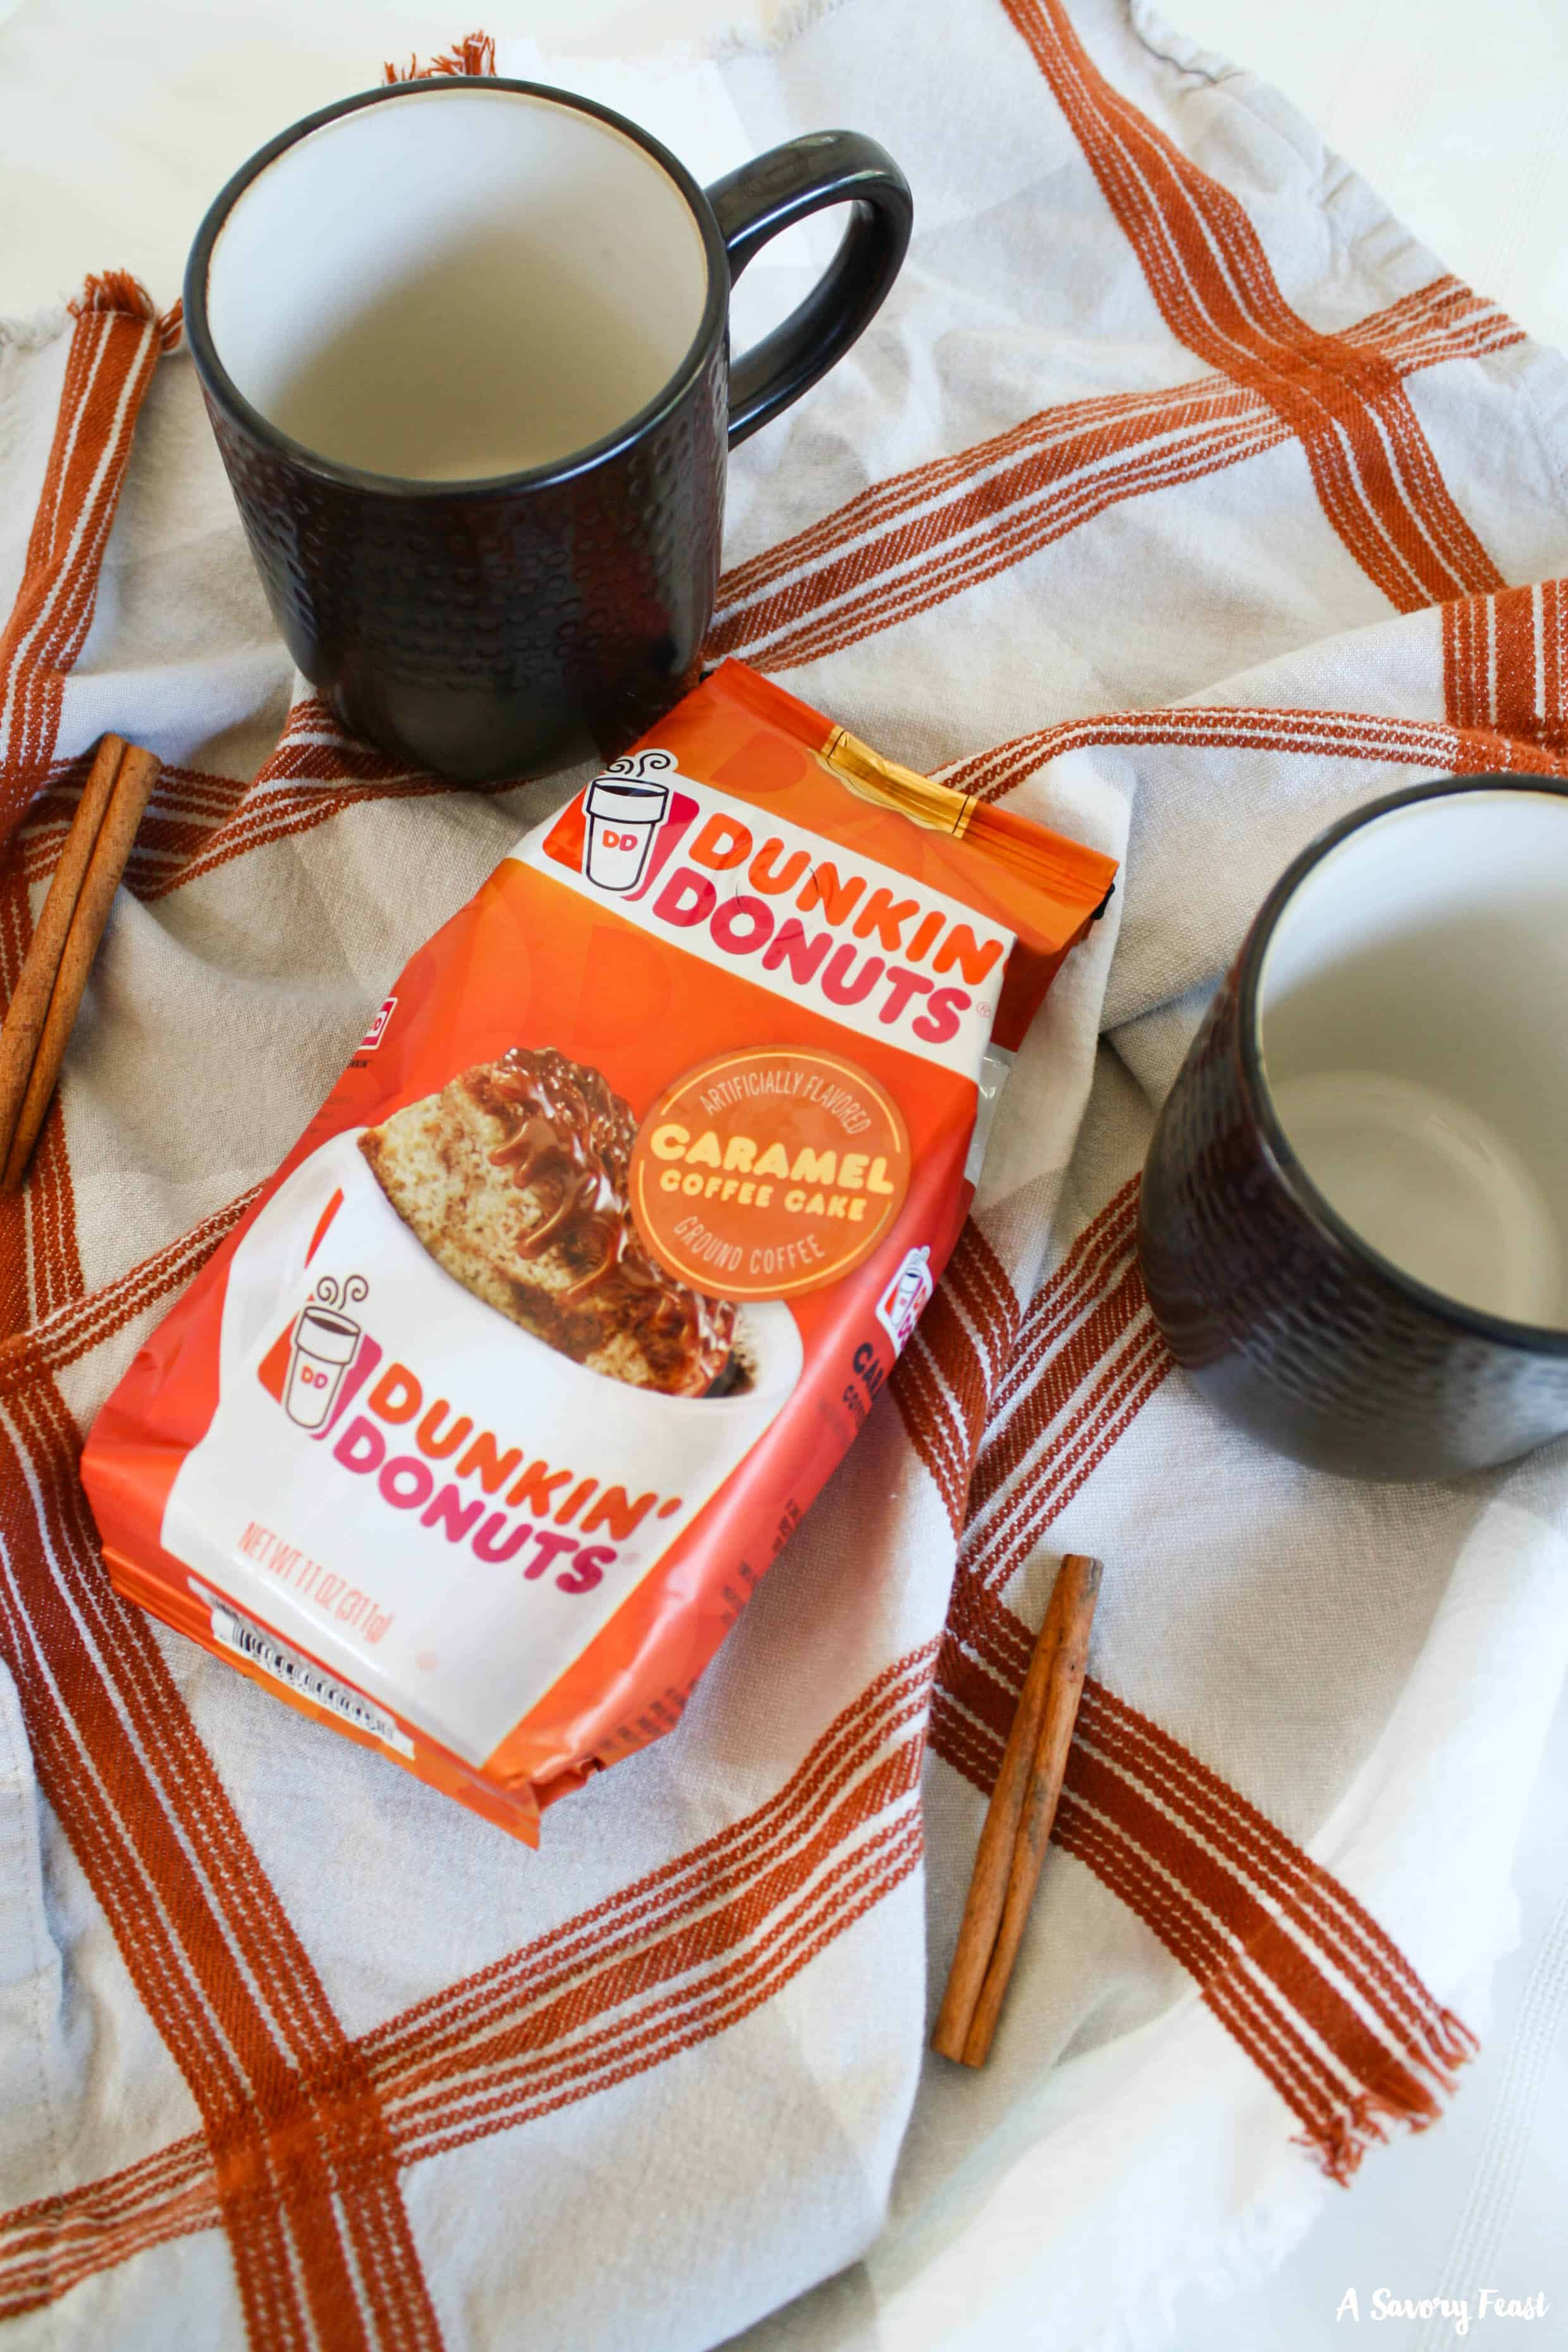 Dunkin' Donuts Caramel Coffee Cake Flavored Coffee